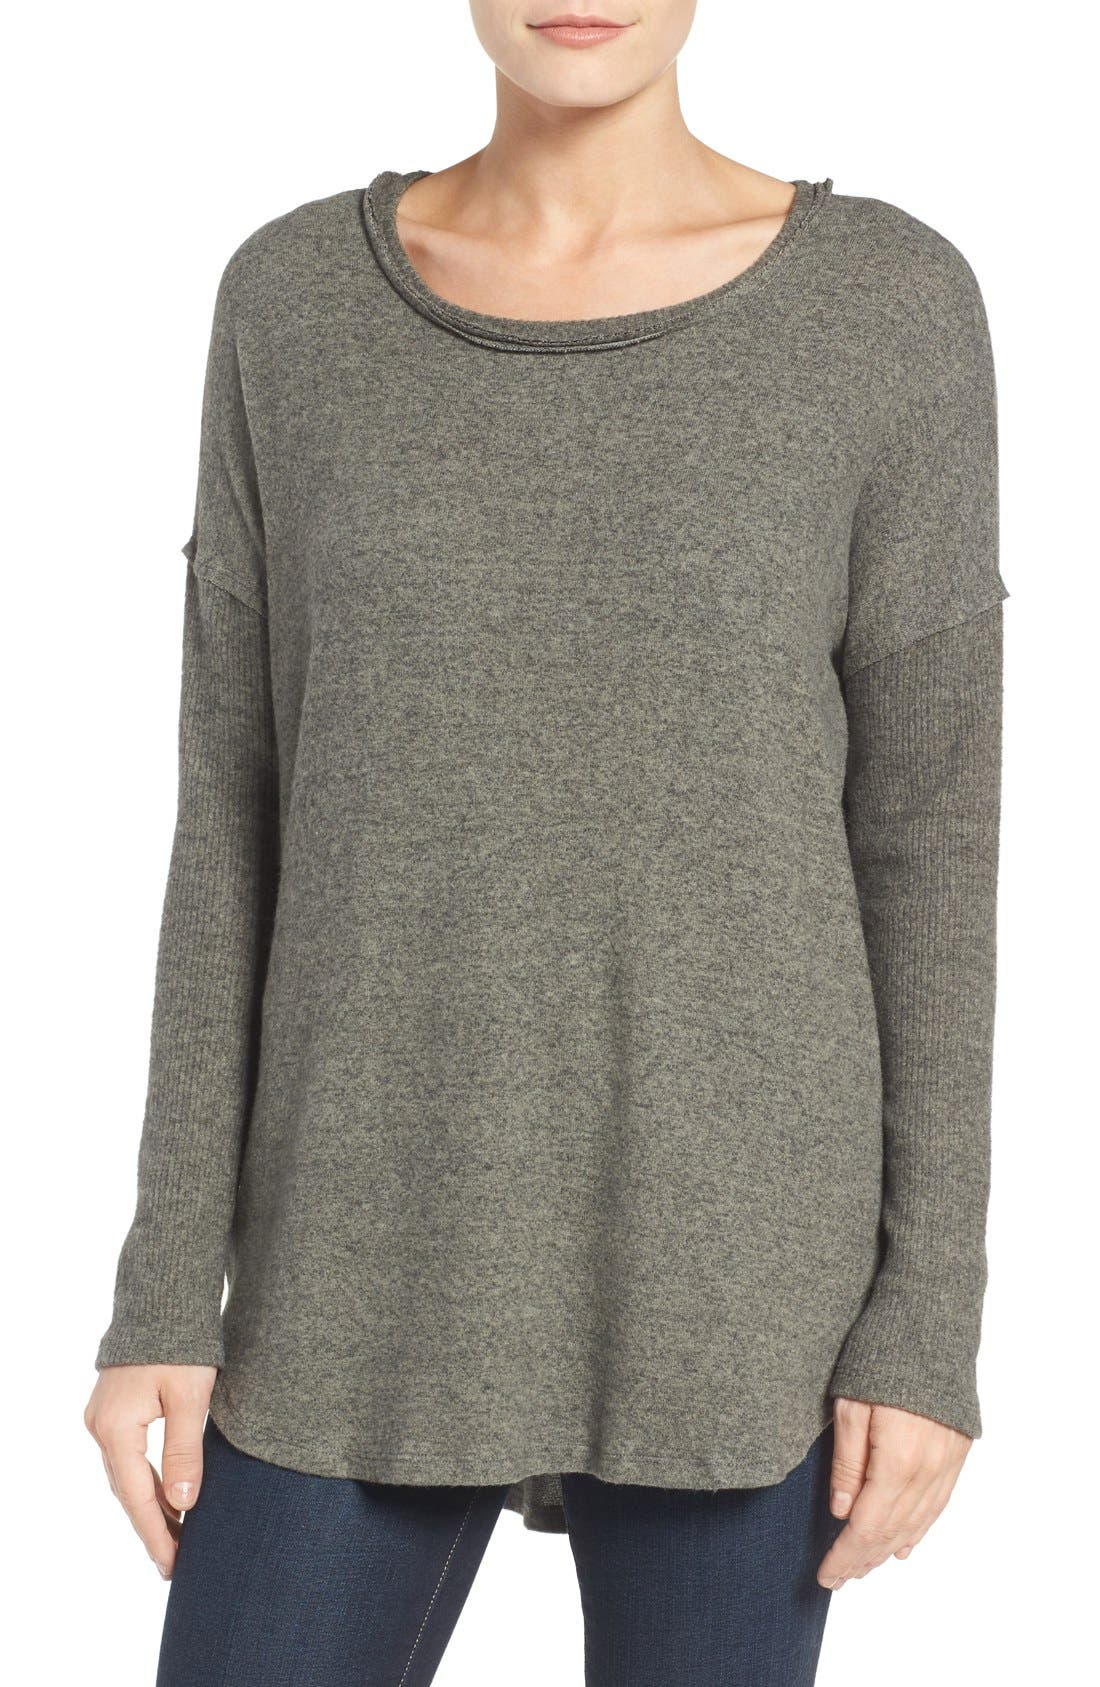 Bobeau Rib Long Sleeve Fuzzy Sweatshirt (Regular & Petite)